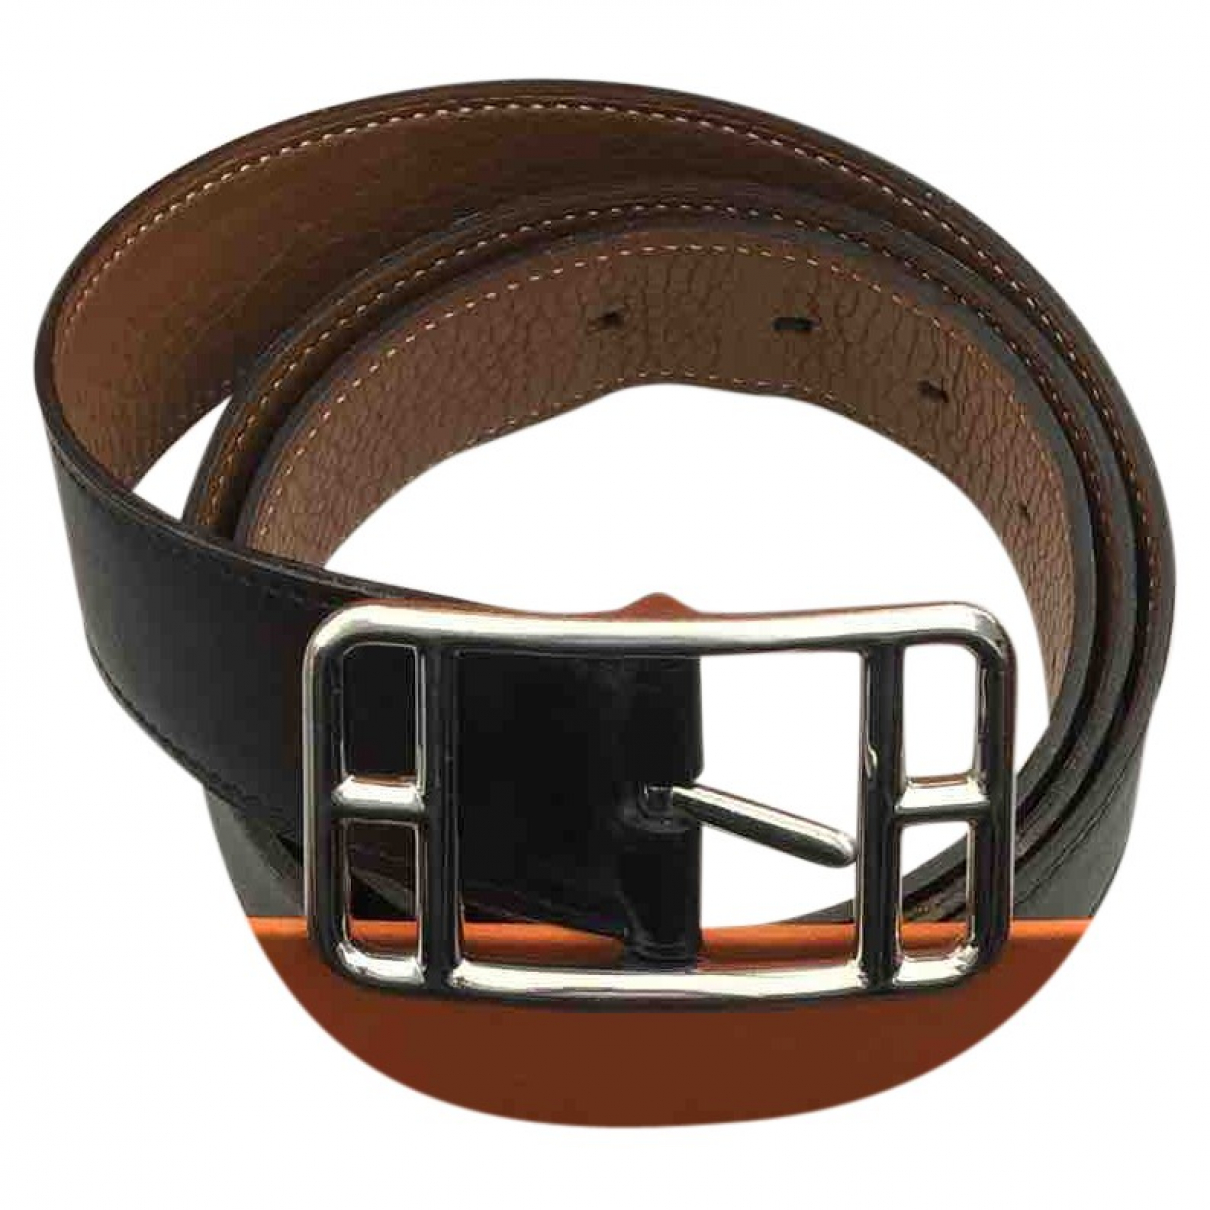 Hermès Belt Black Leather belt for Men 90 cm